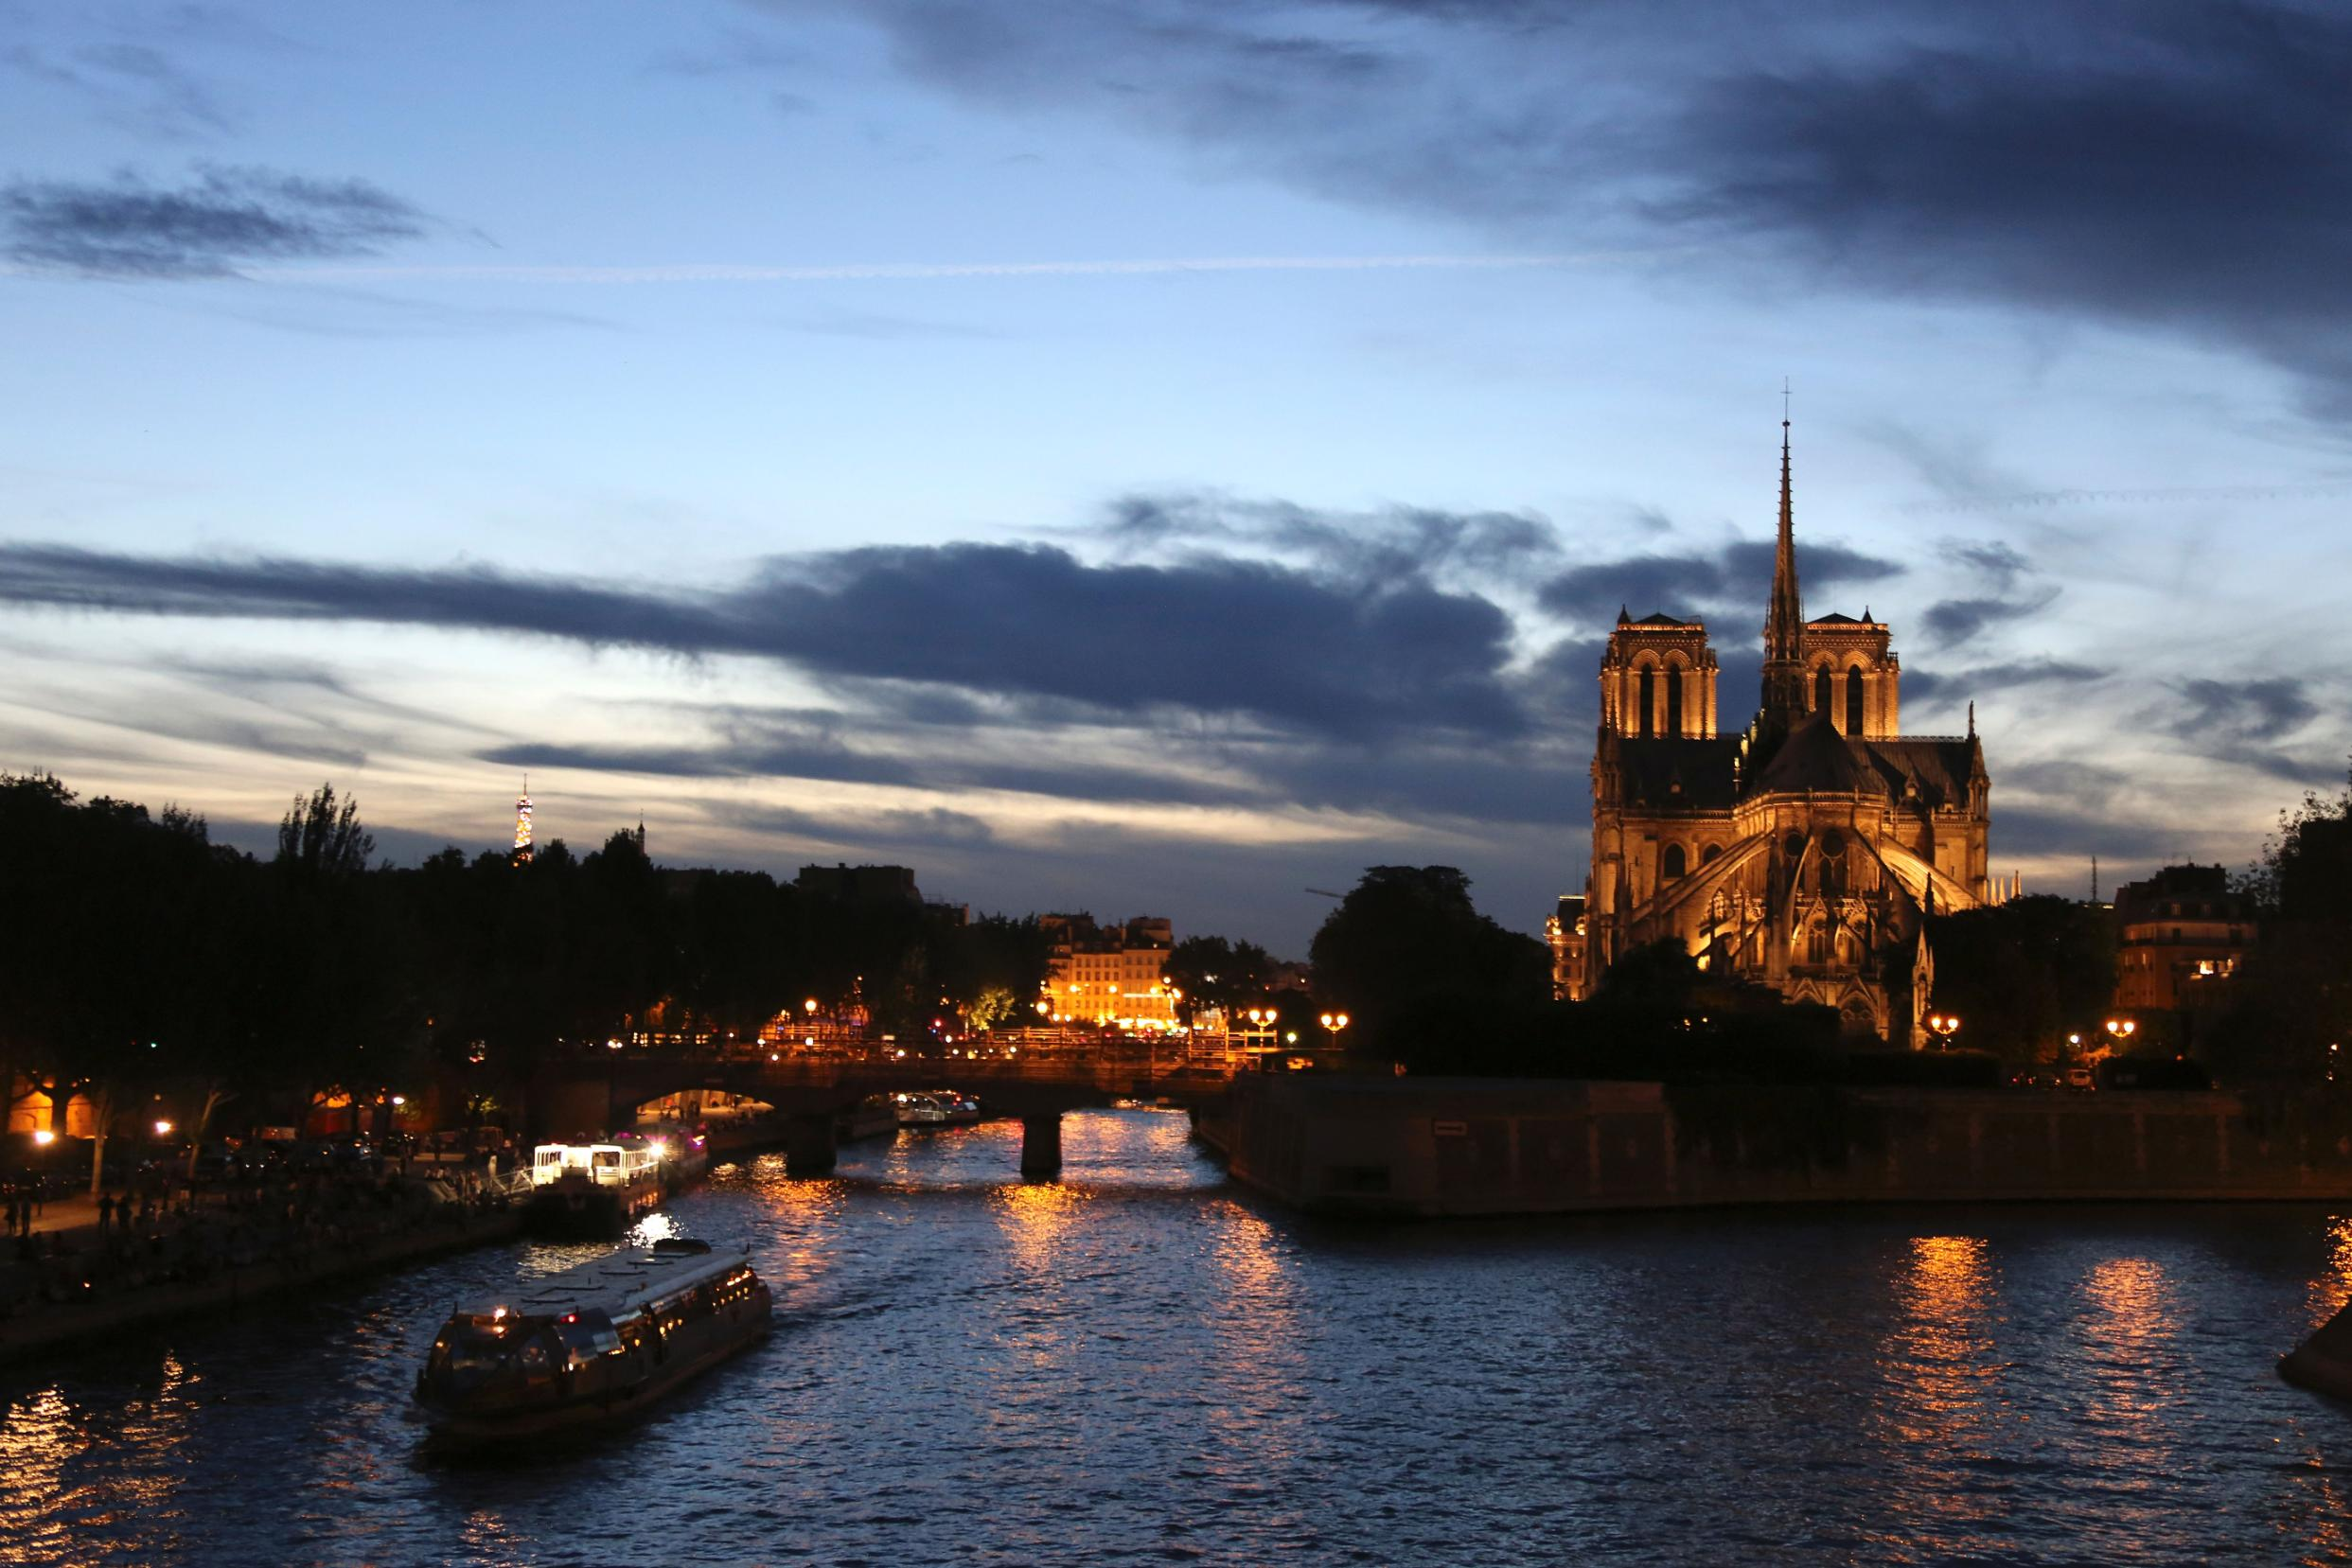 This picture taken in 2016 shows tourist boats cruising on the Seine river alongside the cathedral at sunset.